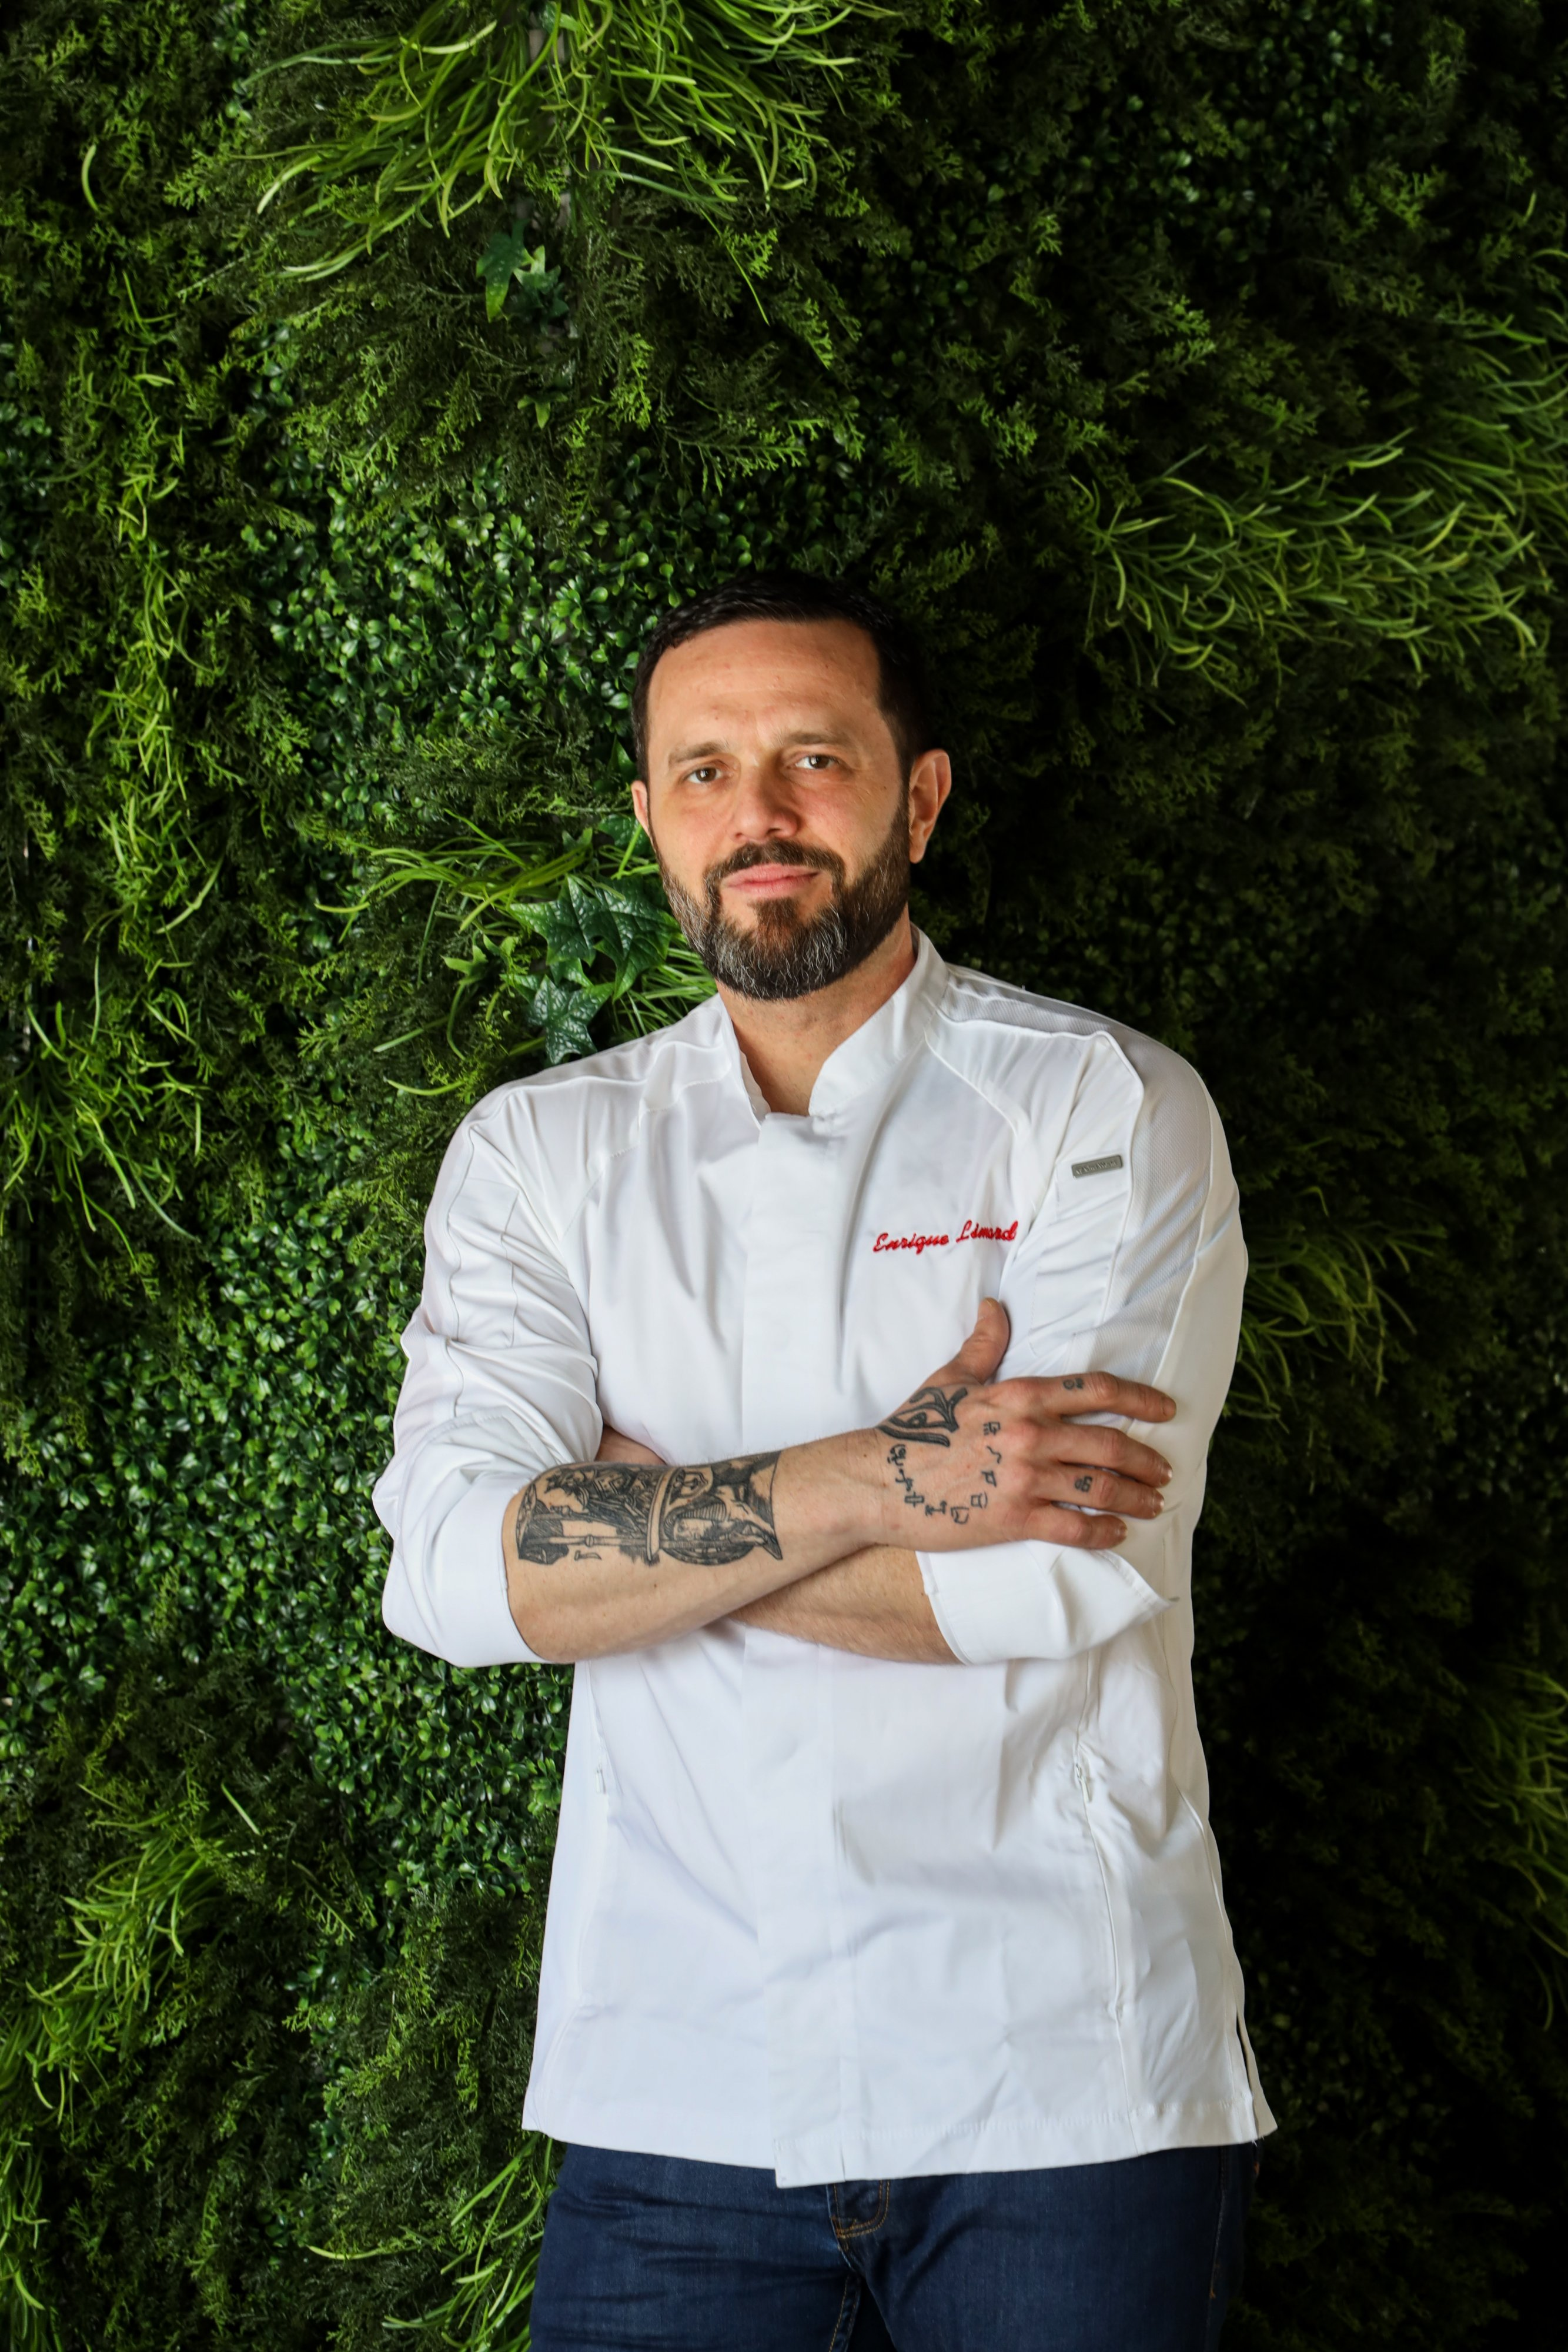 Seven Reasons chef Enrique Limardo. Photograph by Jen Chase